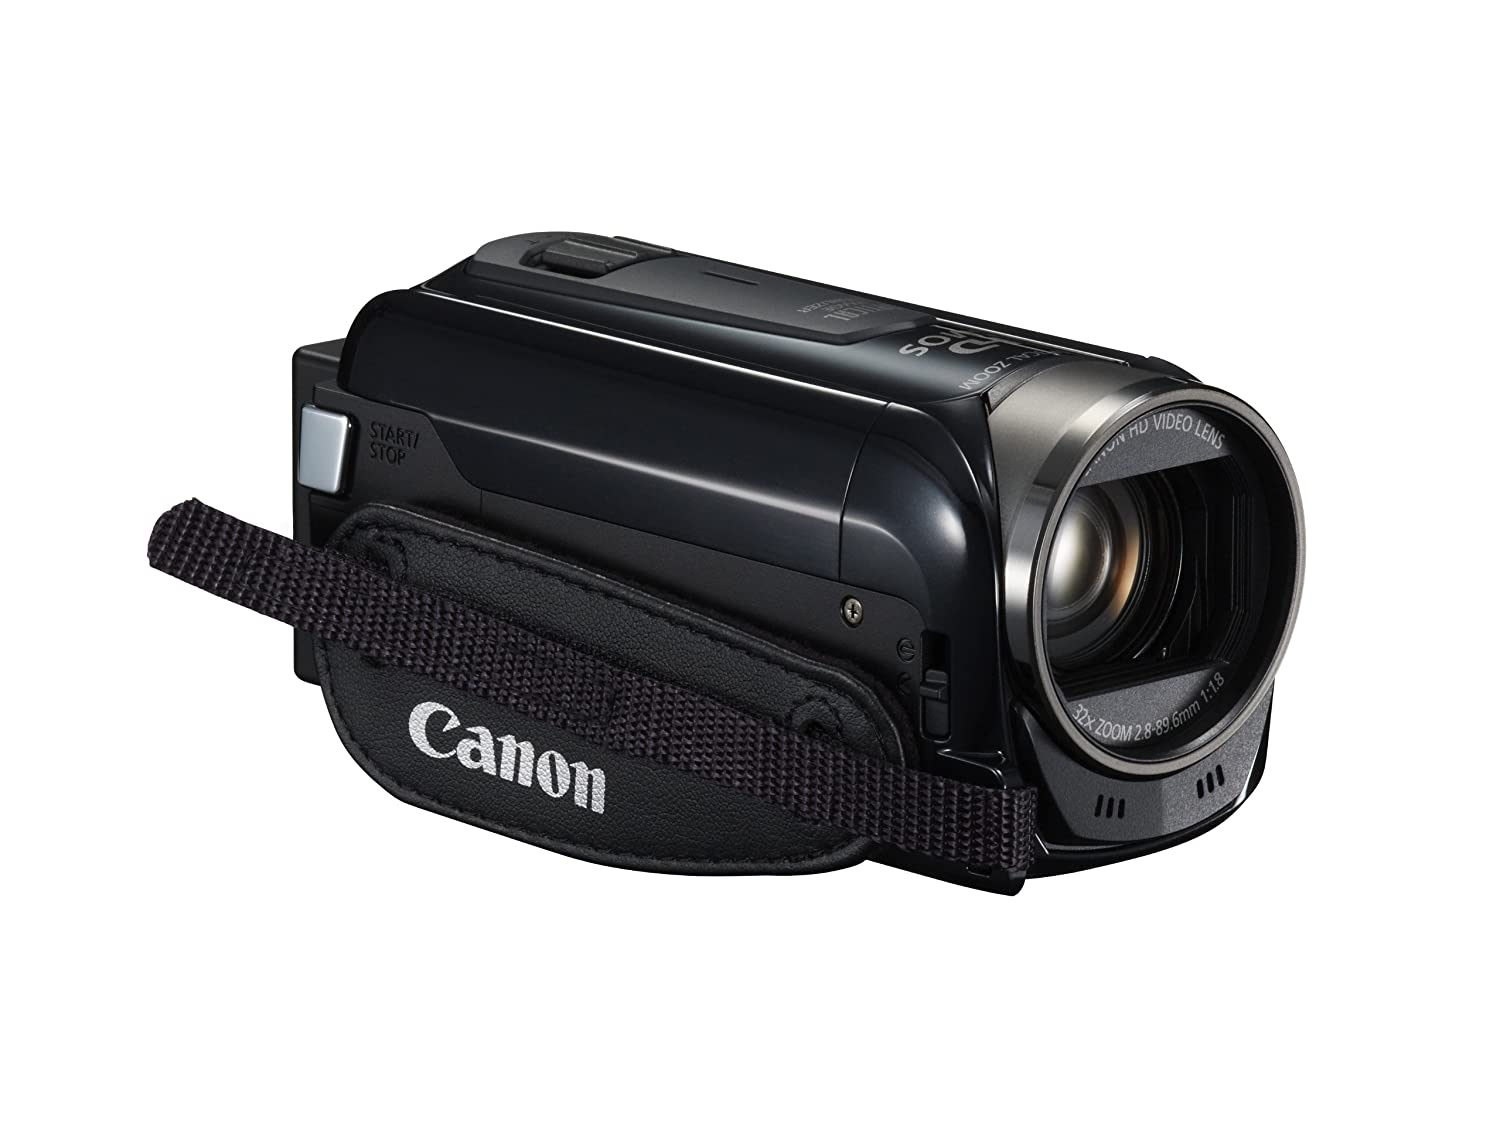 Amazon.com : Canon VIXIA HF R50 Full HD Camcorder with Wi-Fi and 3 ...